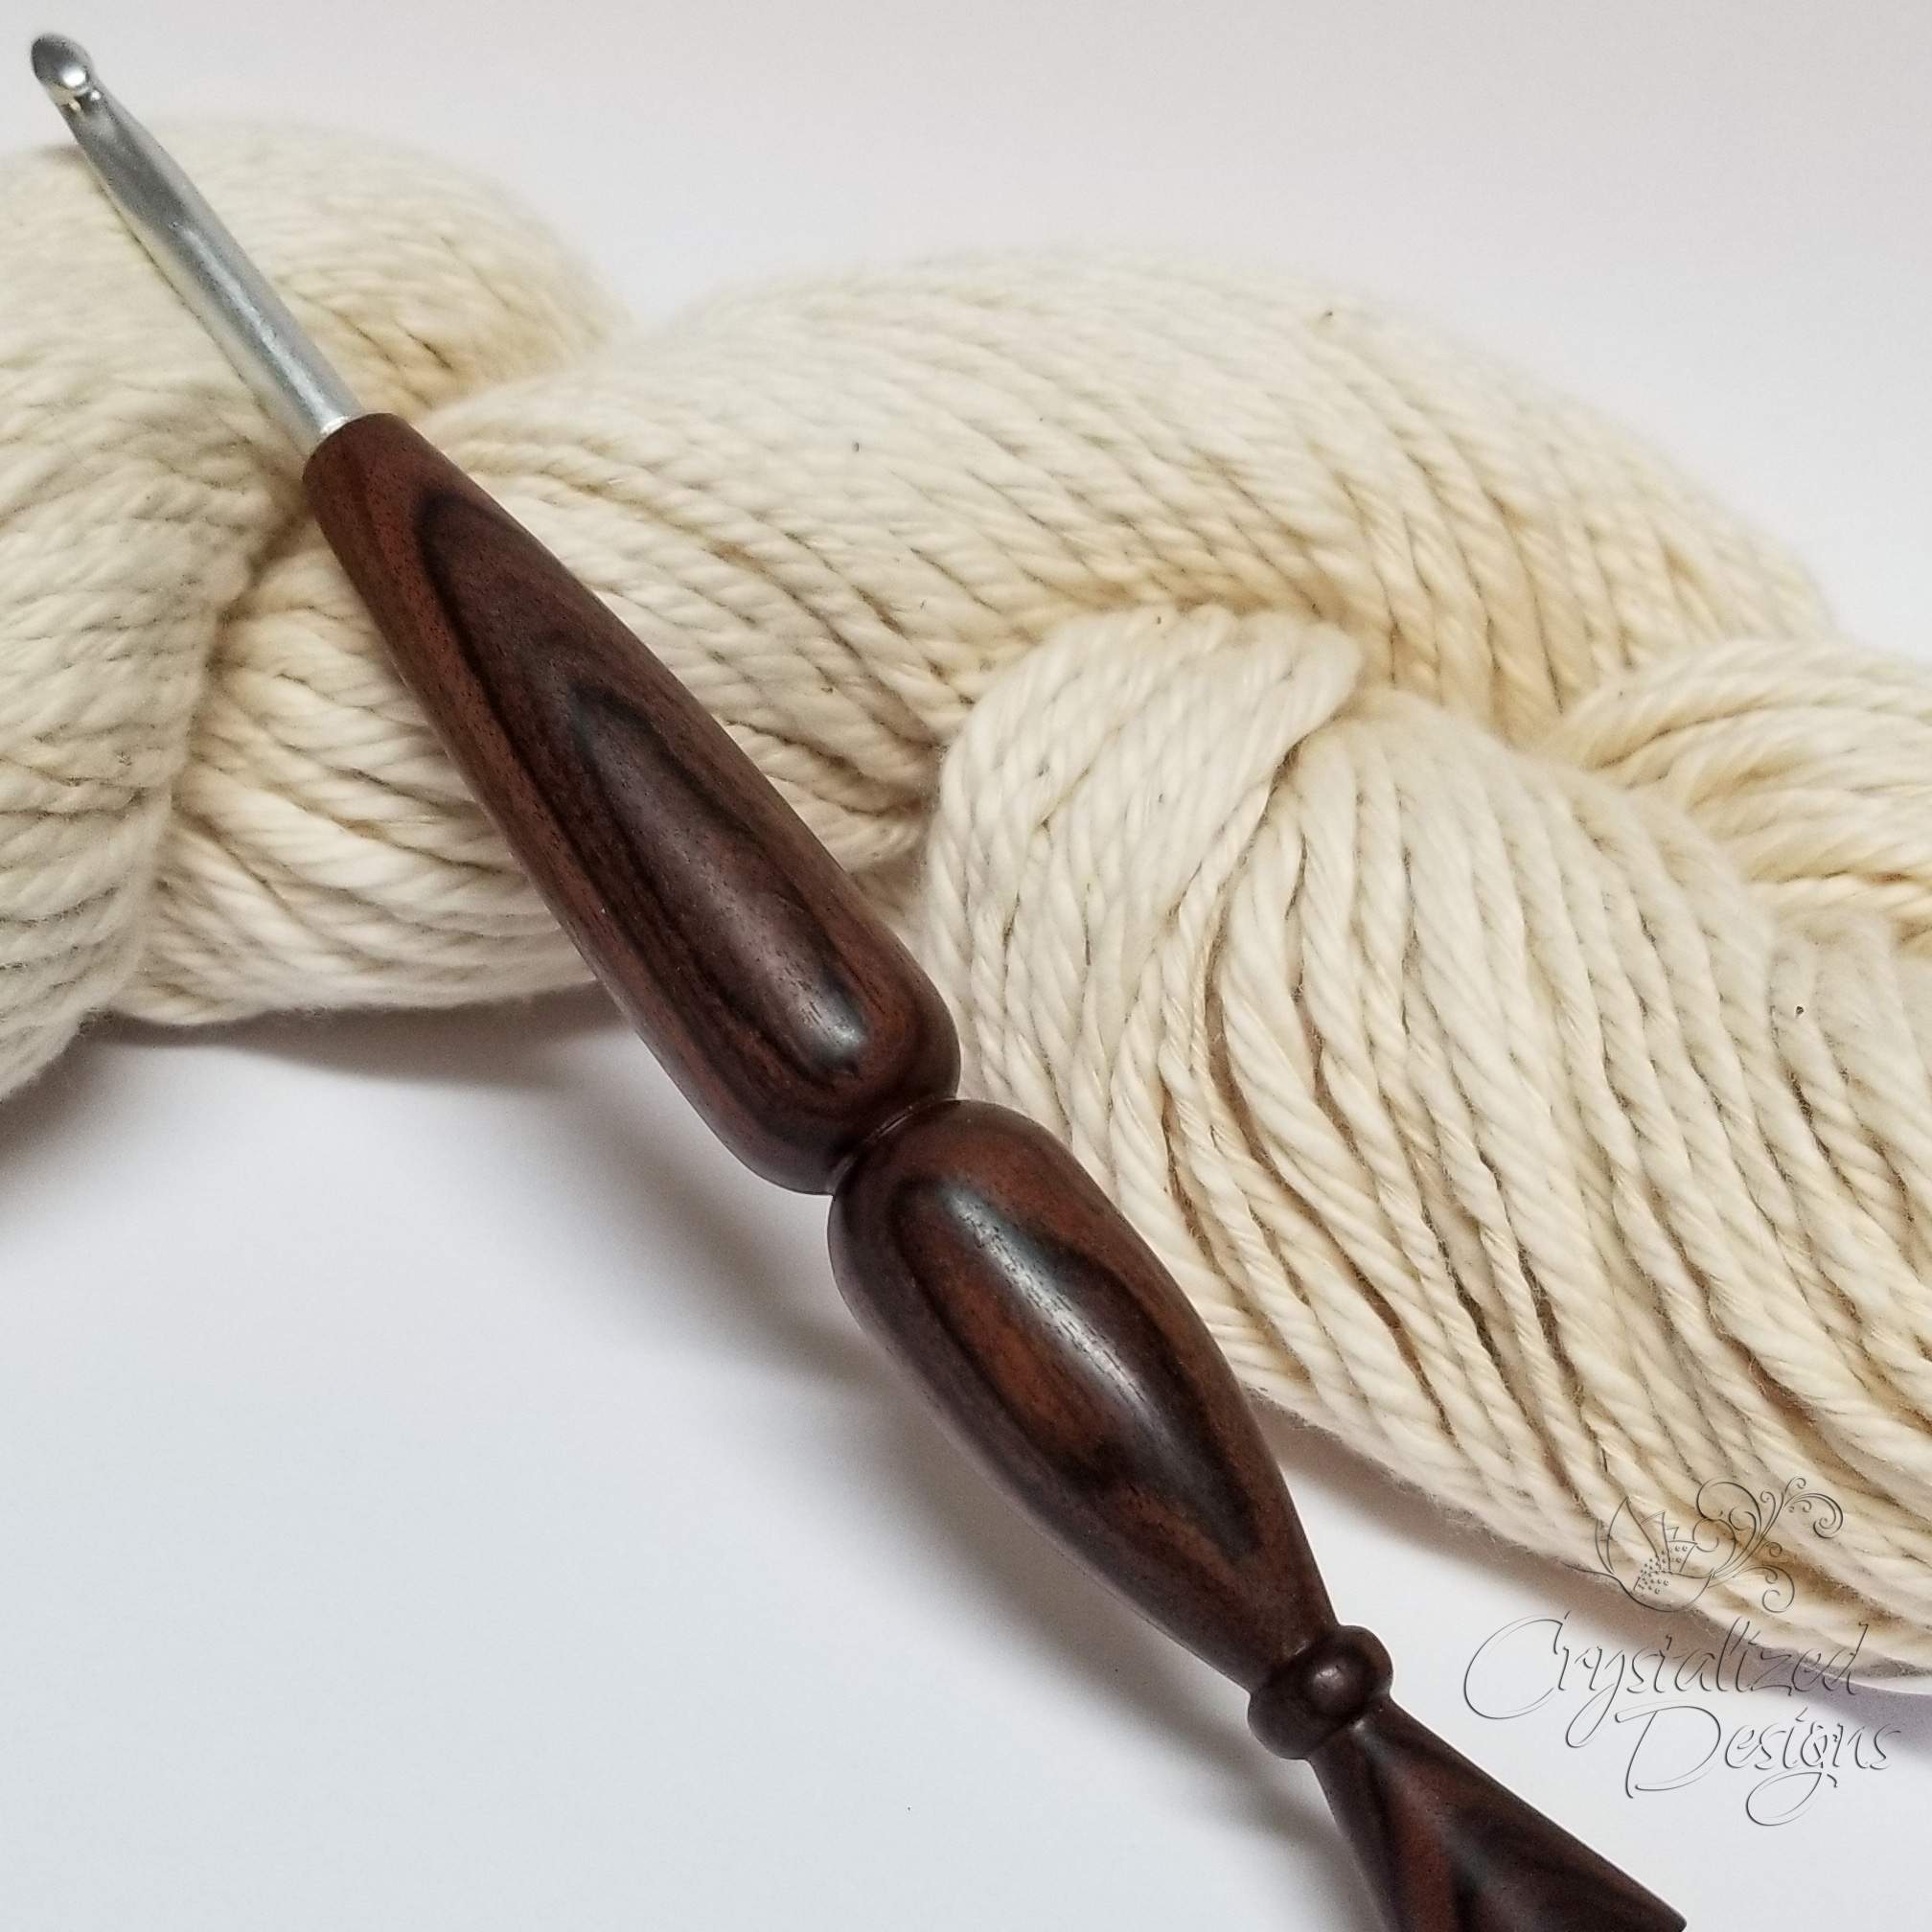 Ashley Leither Designs Hook ~ A Product Review by Crystalized Designs